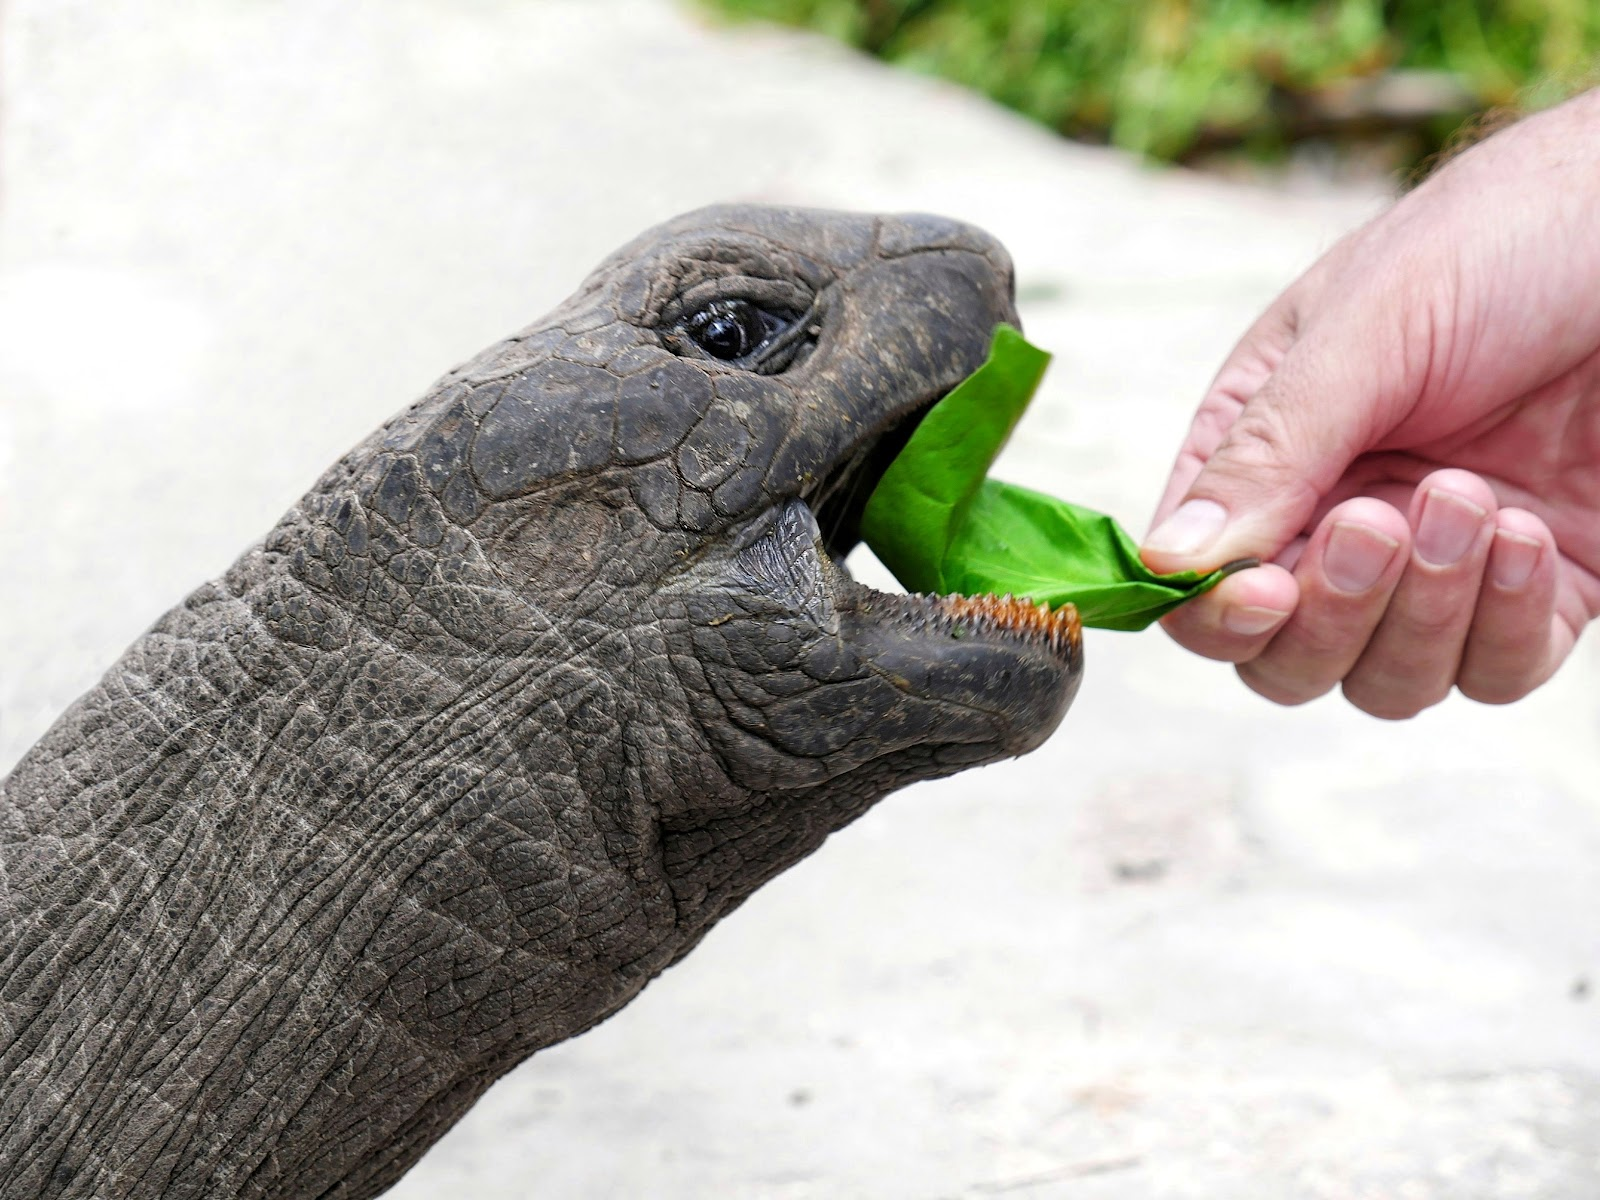 Tortoise eating leaf